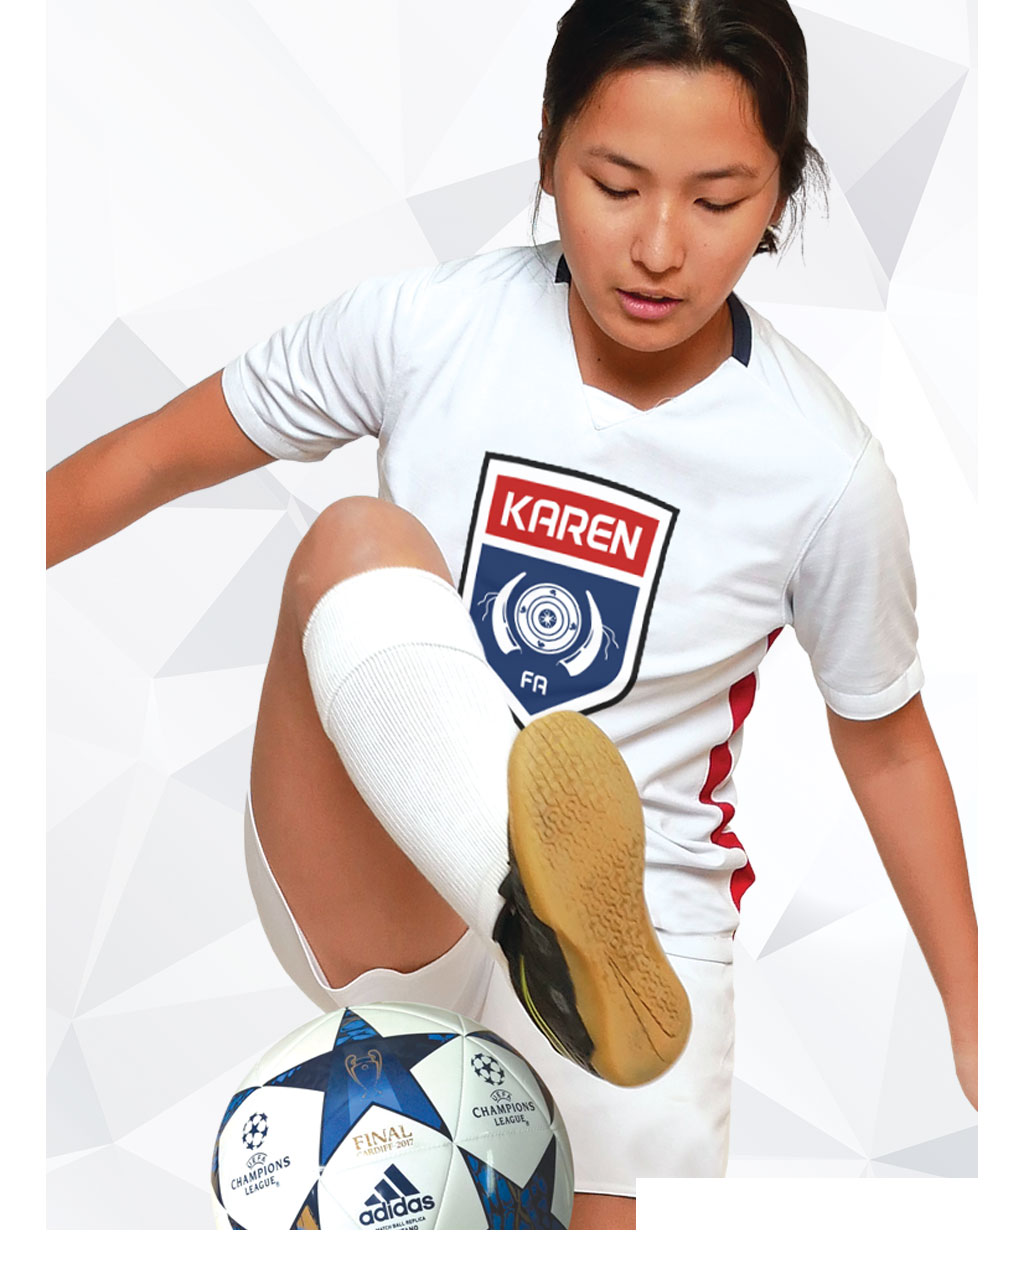 Karen Women and Men National Soccer Team KFA